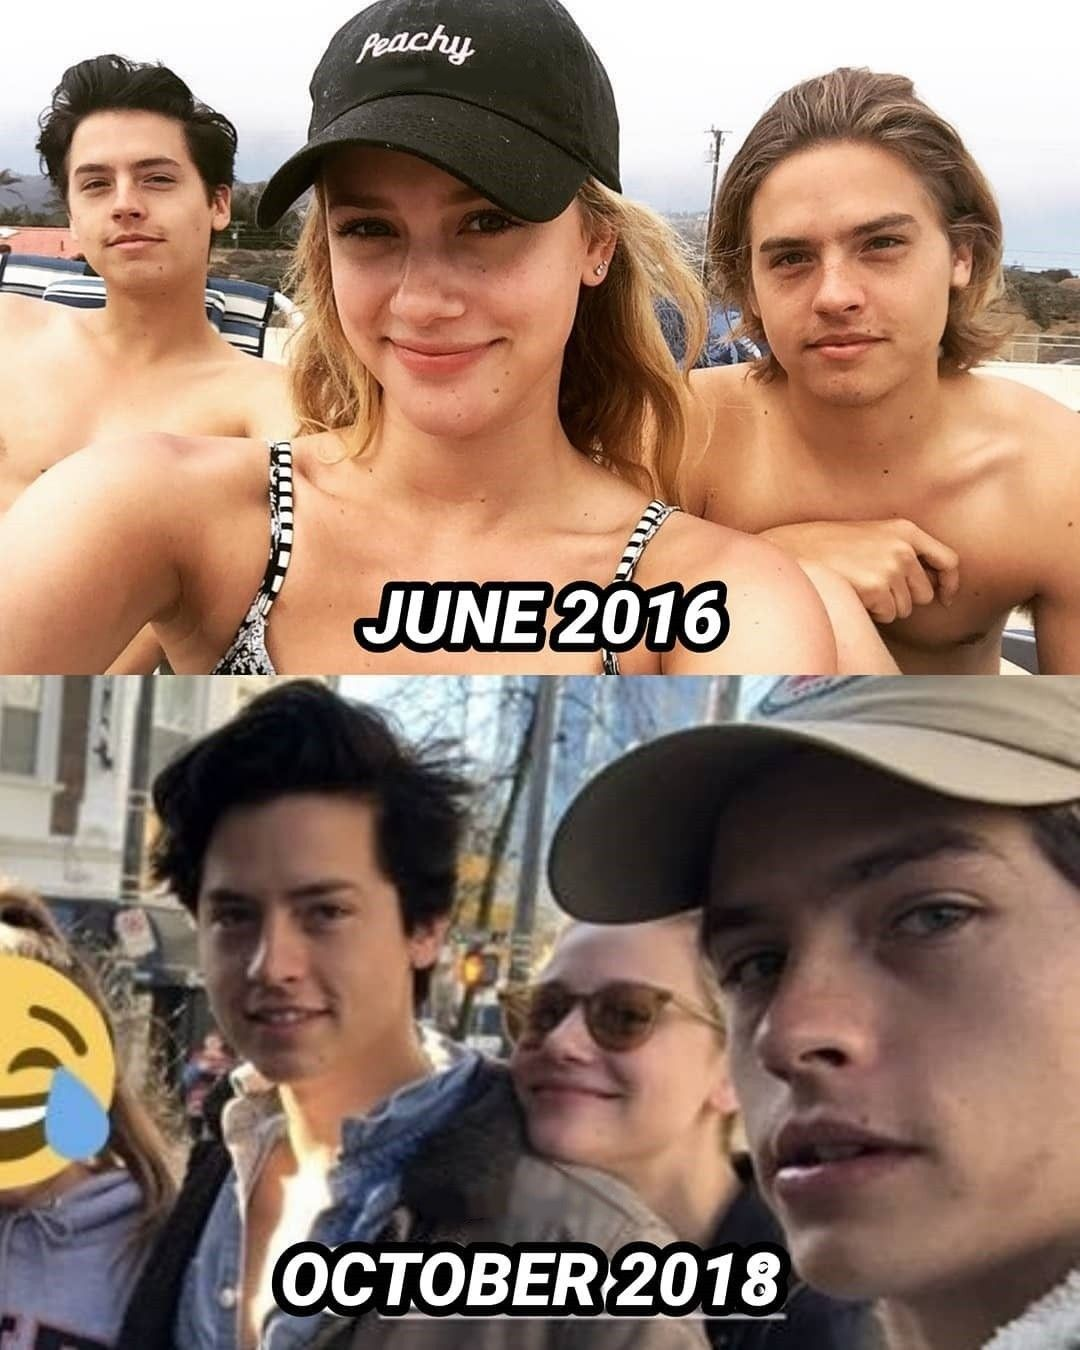 Cole spouse and Lili reinhart are cute🖤🖤